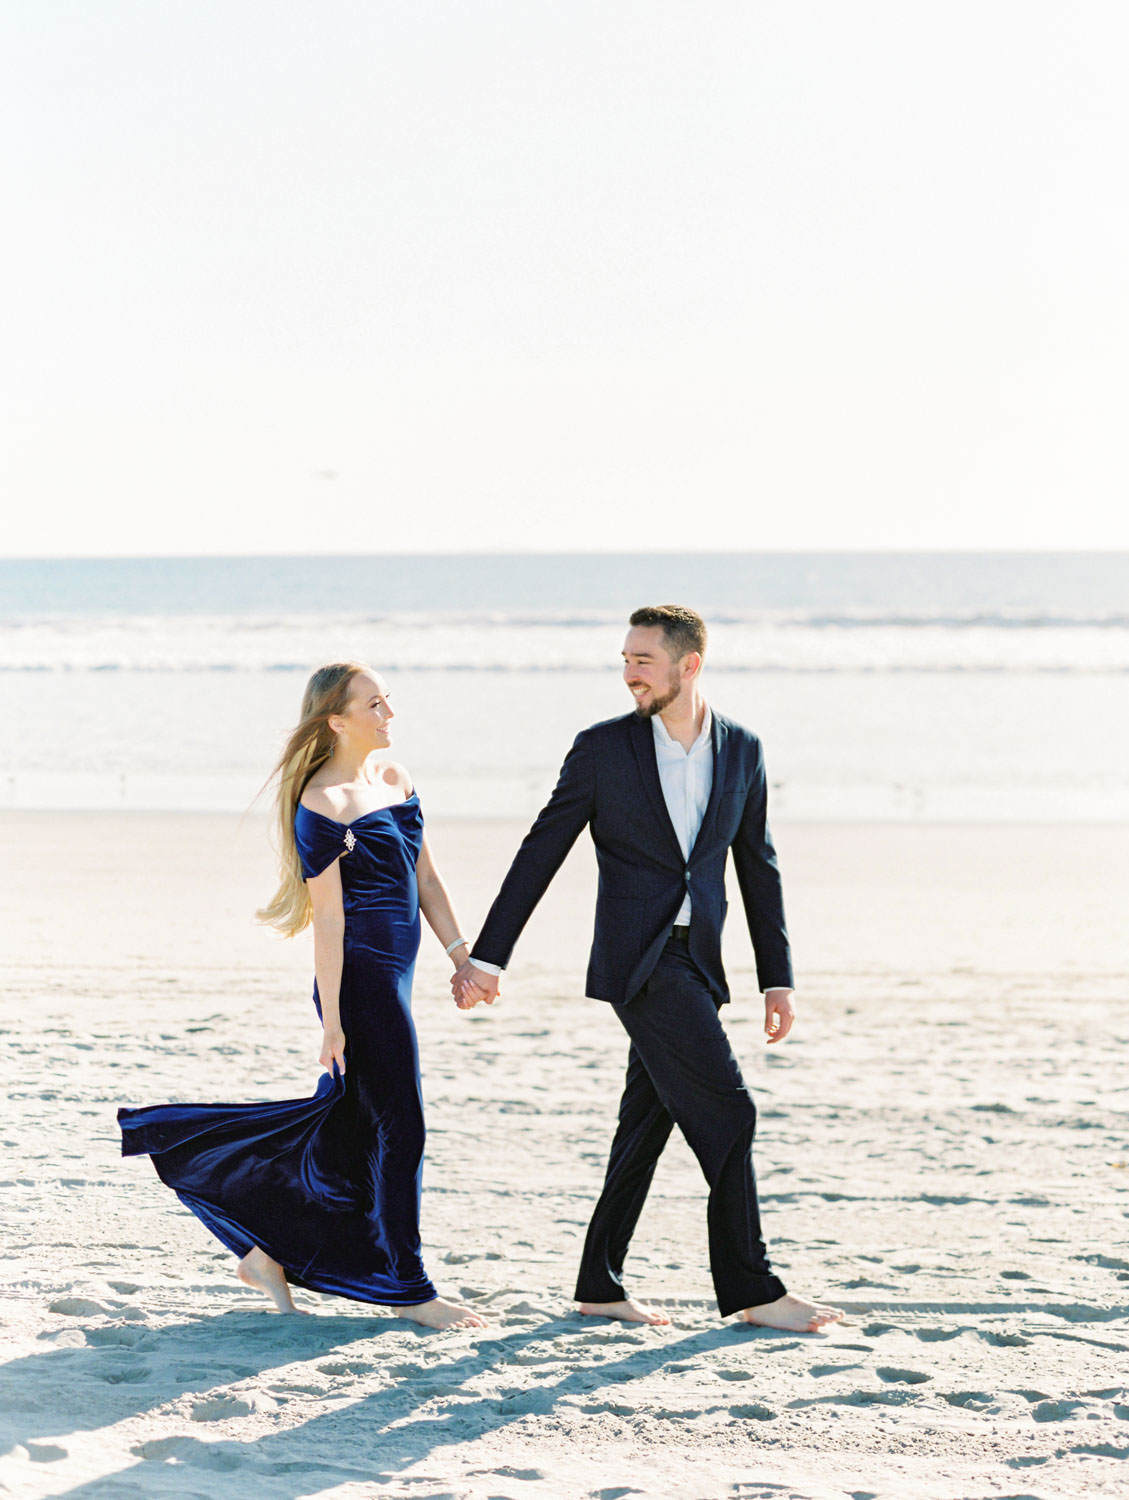 Bride in navy velvet gown and groom in suit. Elegant Coronado Engagement Photos on the Beach on film by Cavin Elizabeth Photography.